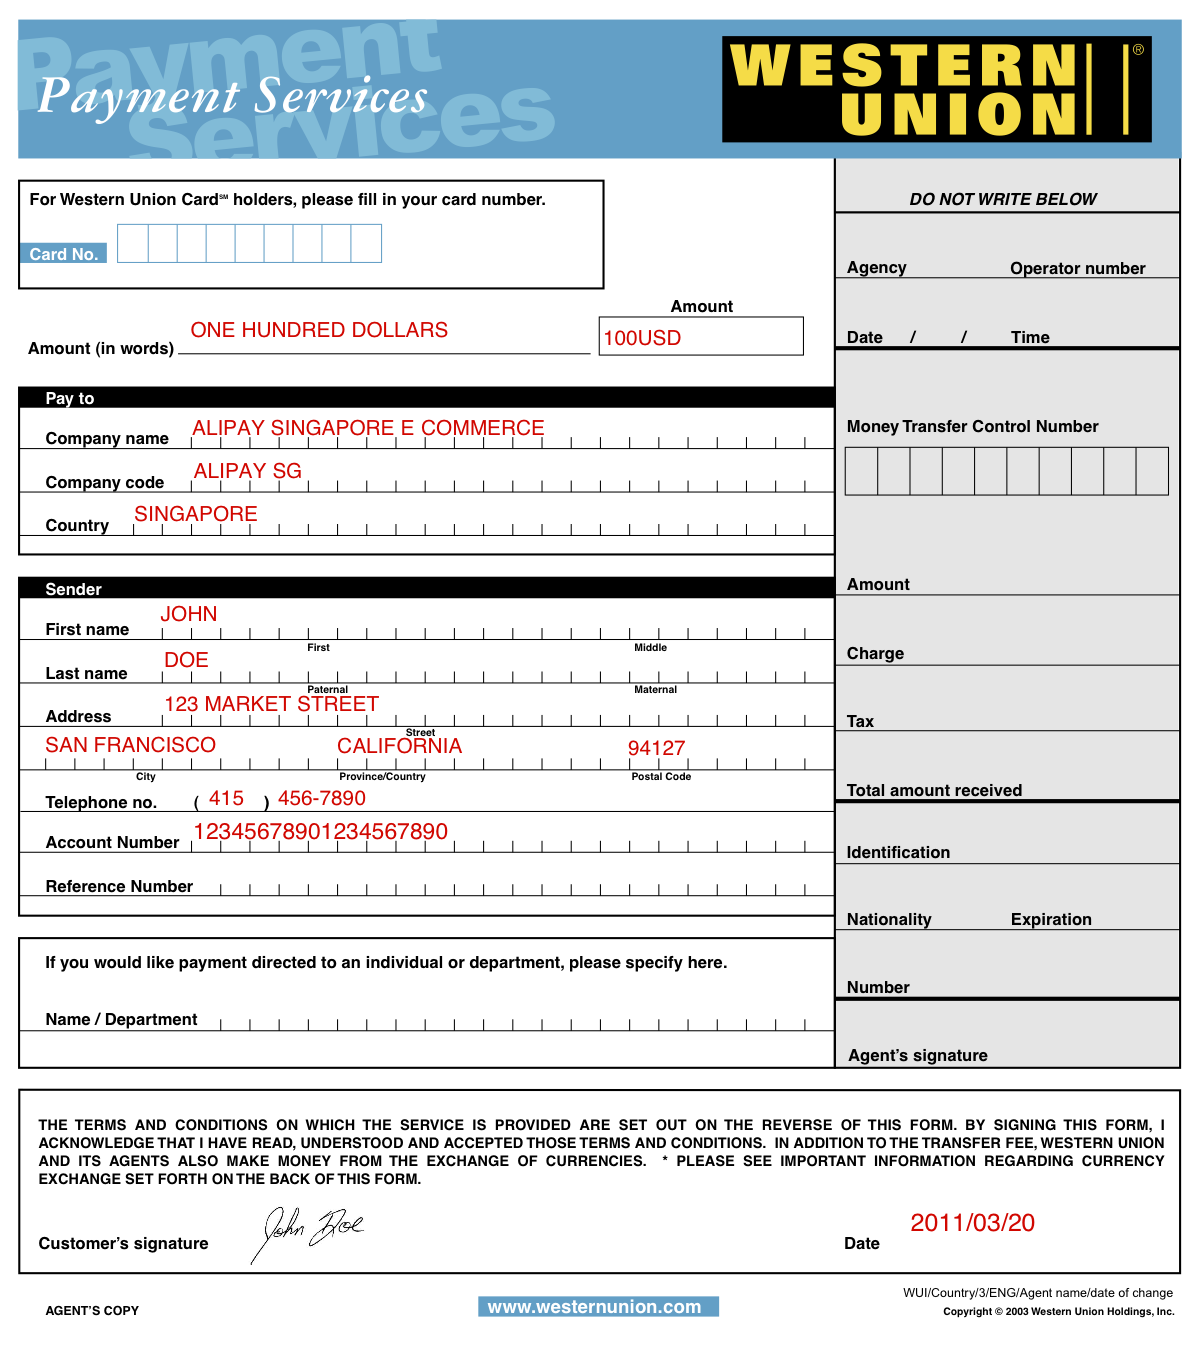 Check western union status using tracking number